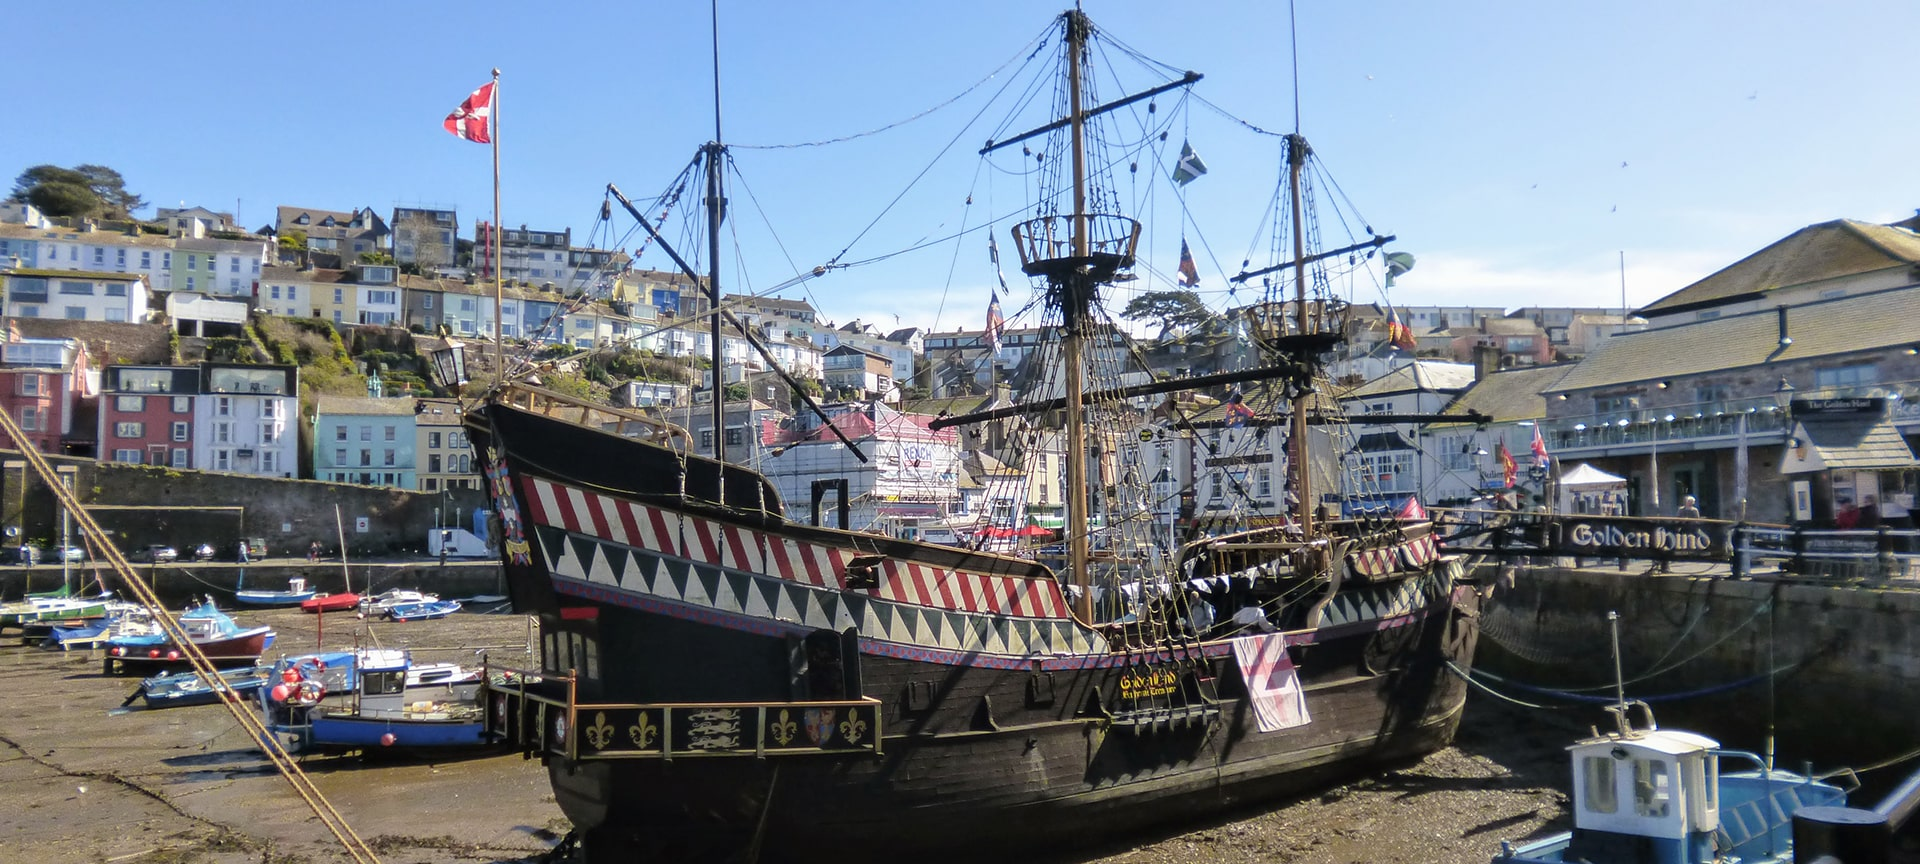 Located at the old fishing port of Brixham is The Golden Hind, a full sized and permanently moored replica of one of the most iconic exploration ships and a landmark tourist attraction in the town since 1964. Through the replica's five decks it tells the story of the life and times of the captain and crew along with conditions at sea during the 1600s through various exhibitions, re-enactments and interactive sessions. The idea is to allow visitors to really experience the sights, sounds and smells of life aboard a Tudor ship.